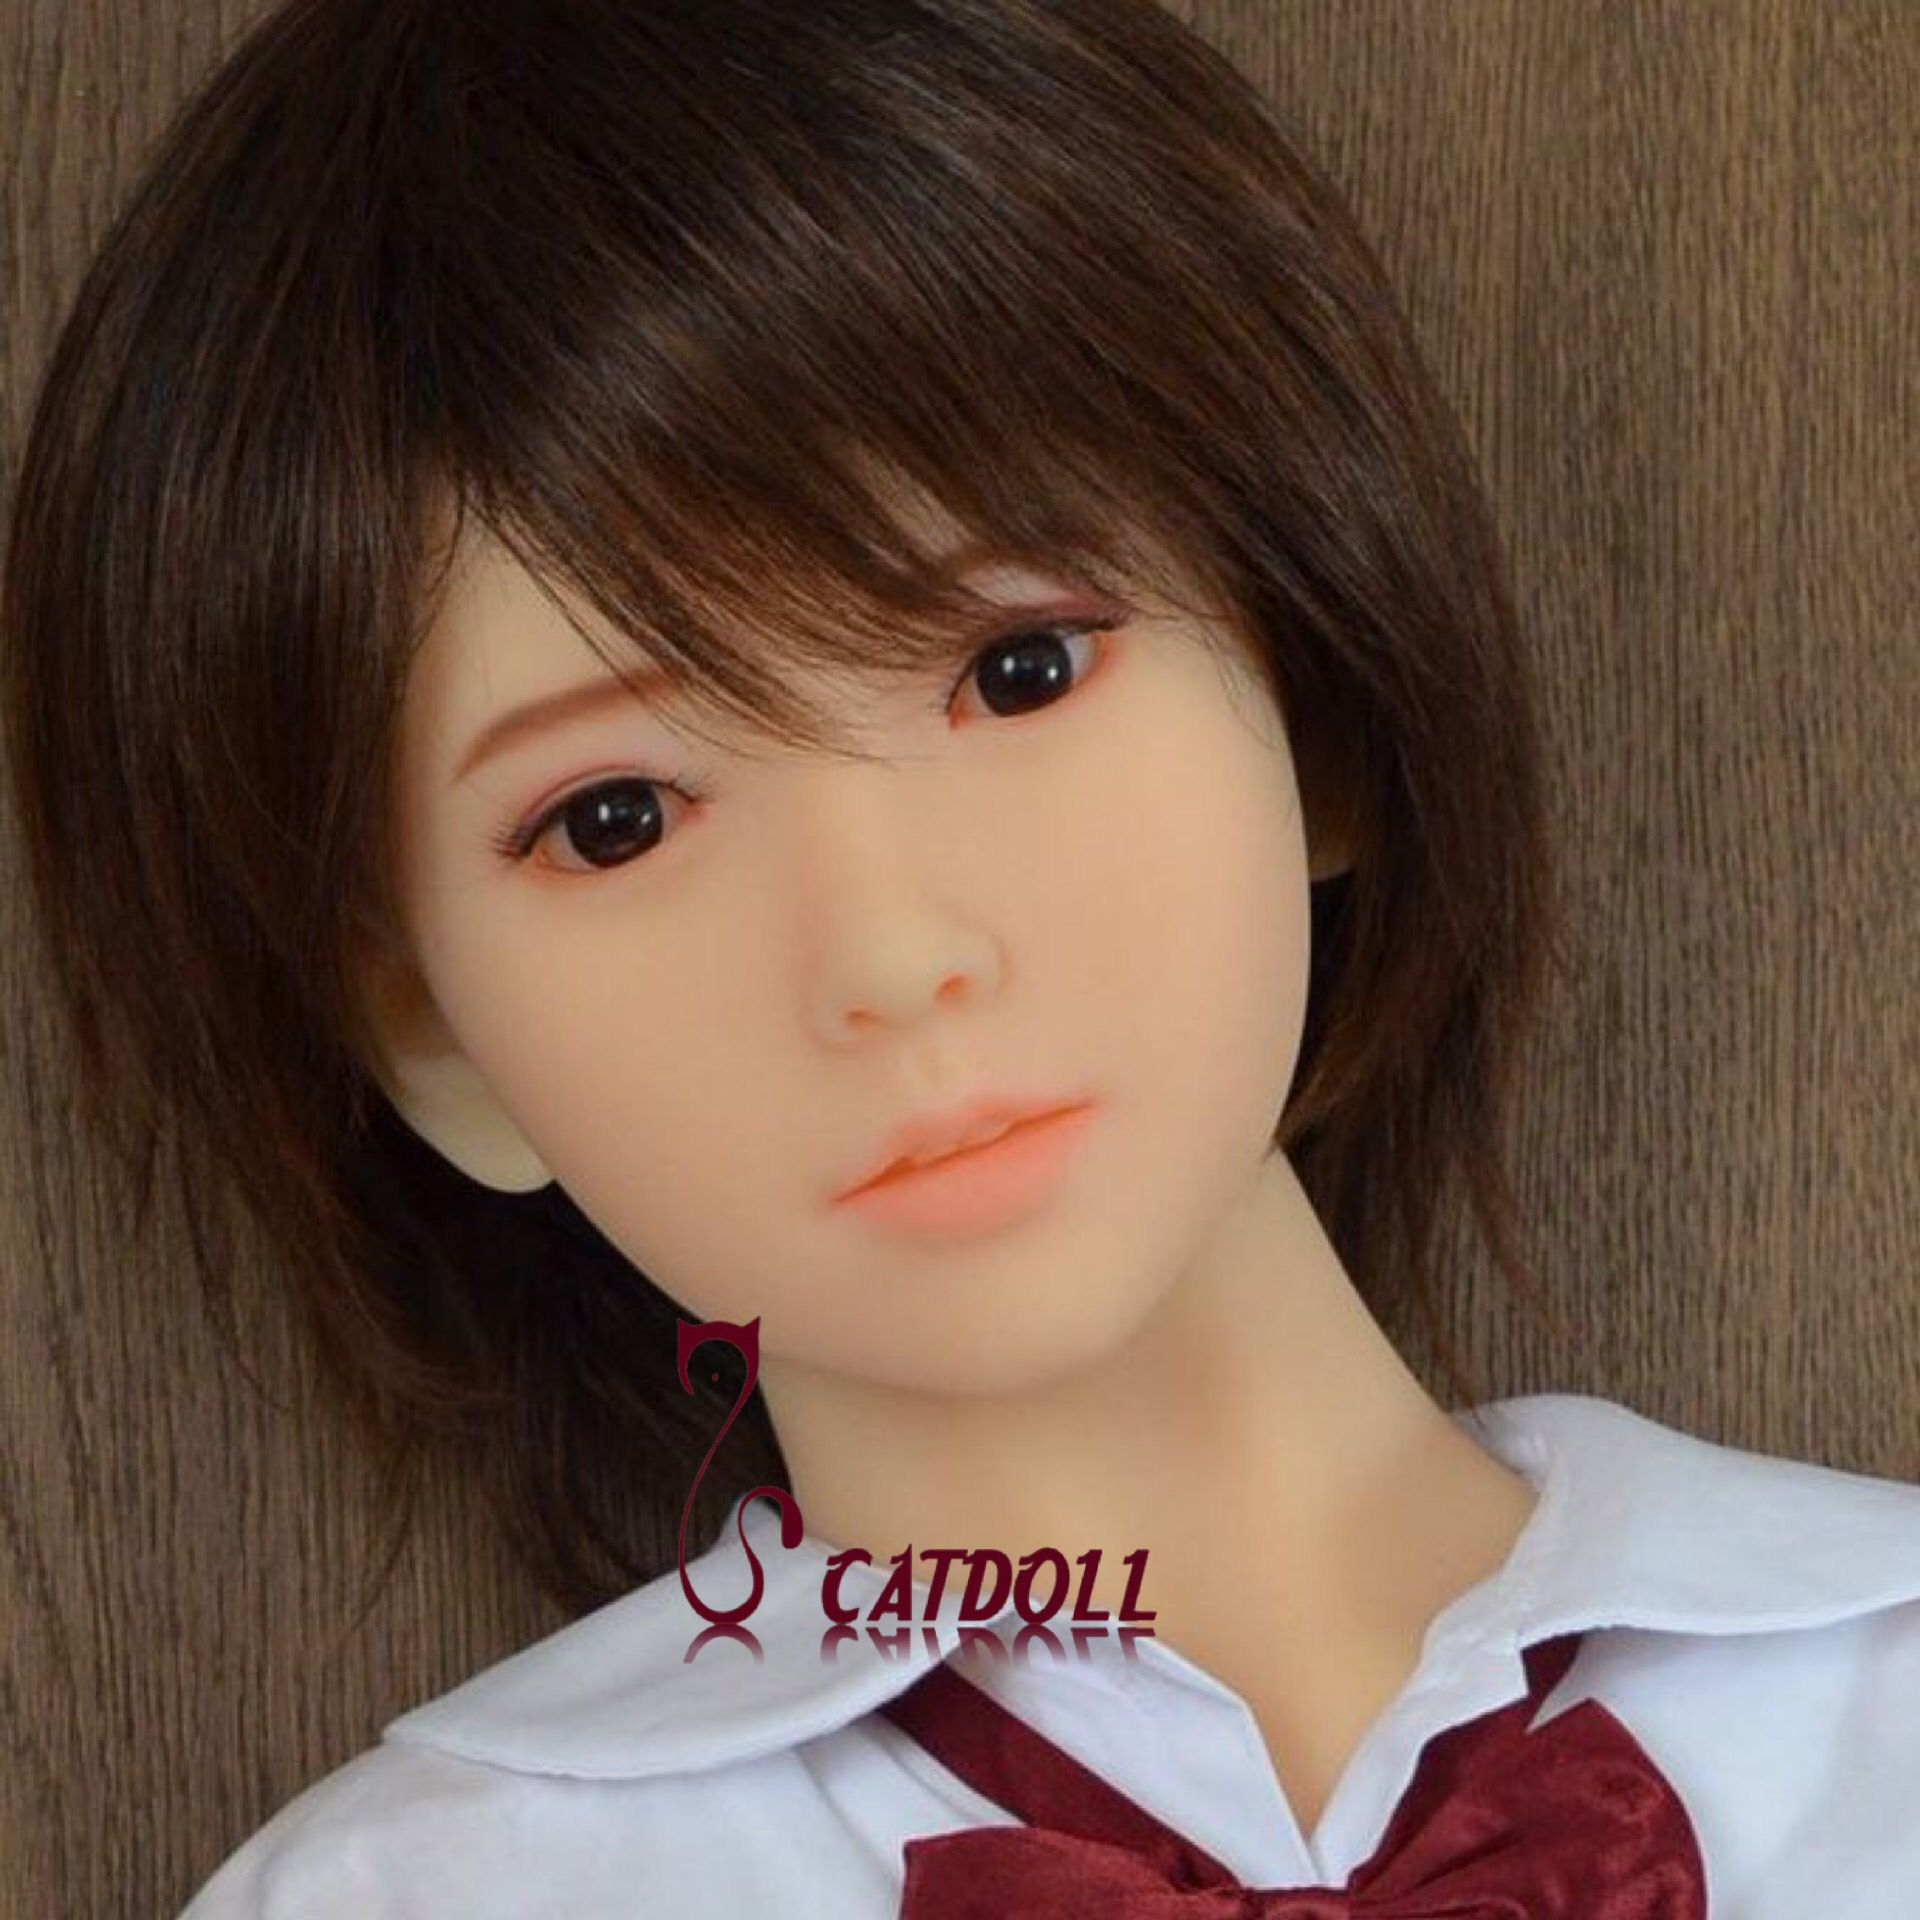 Top quality <font><b>CATDOLL</b></font> Japanese <font><b>sex</b></font> <font><b>doll</b></font> heads Tami for 136cm <font><b>doll</b></font>,oral <font><b>sex</b></font> <font><b>doll</b></font> heads for 146cm <font><b>doll</b></font>,oral <font><b>sex</b></font> toy for adult image